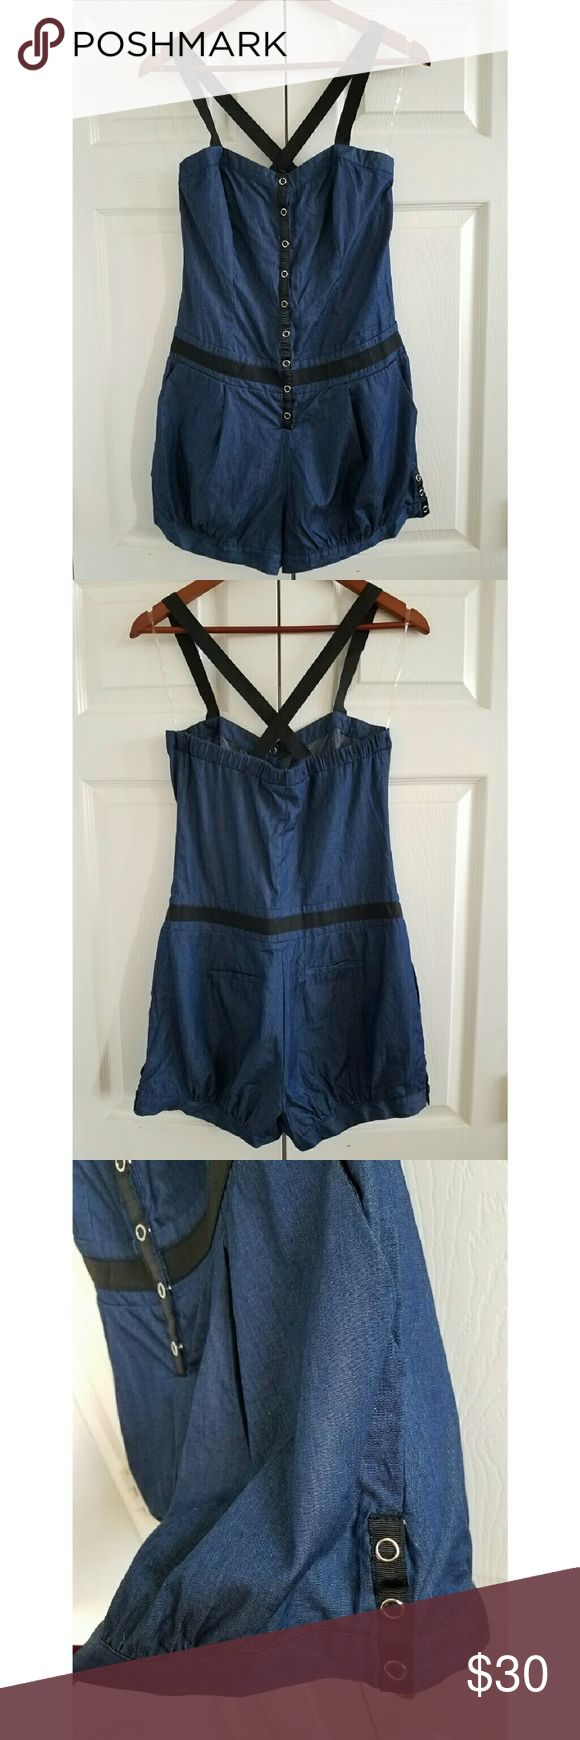 Jean Romper Jean Romper with crisscross elastic straps. Snap front closure with back pockets. Pants Jumpsuits & Rompers